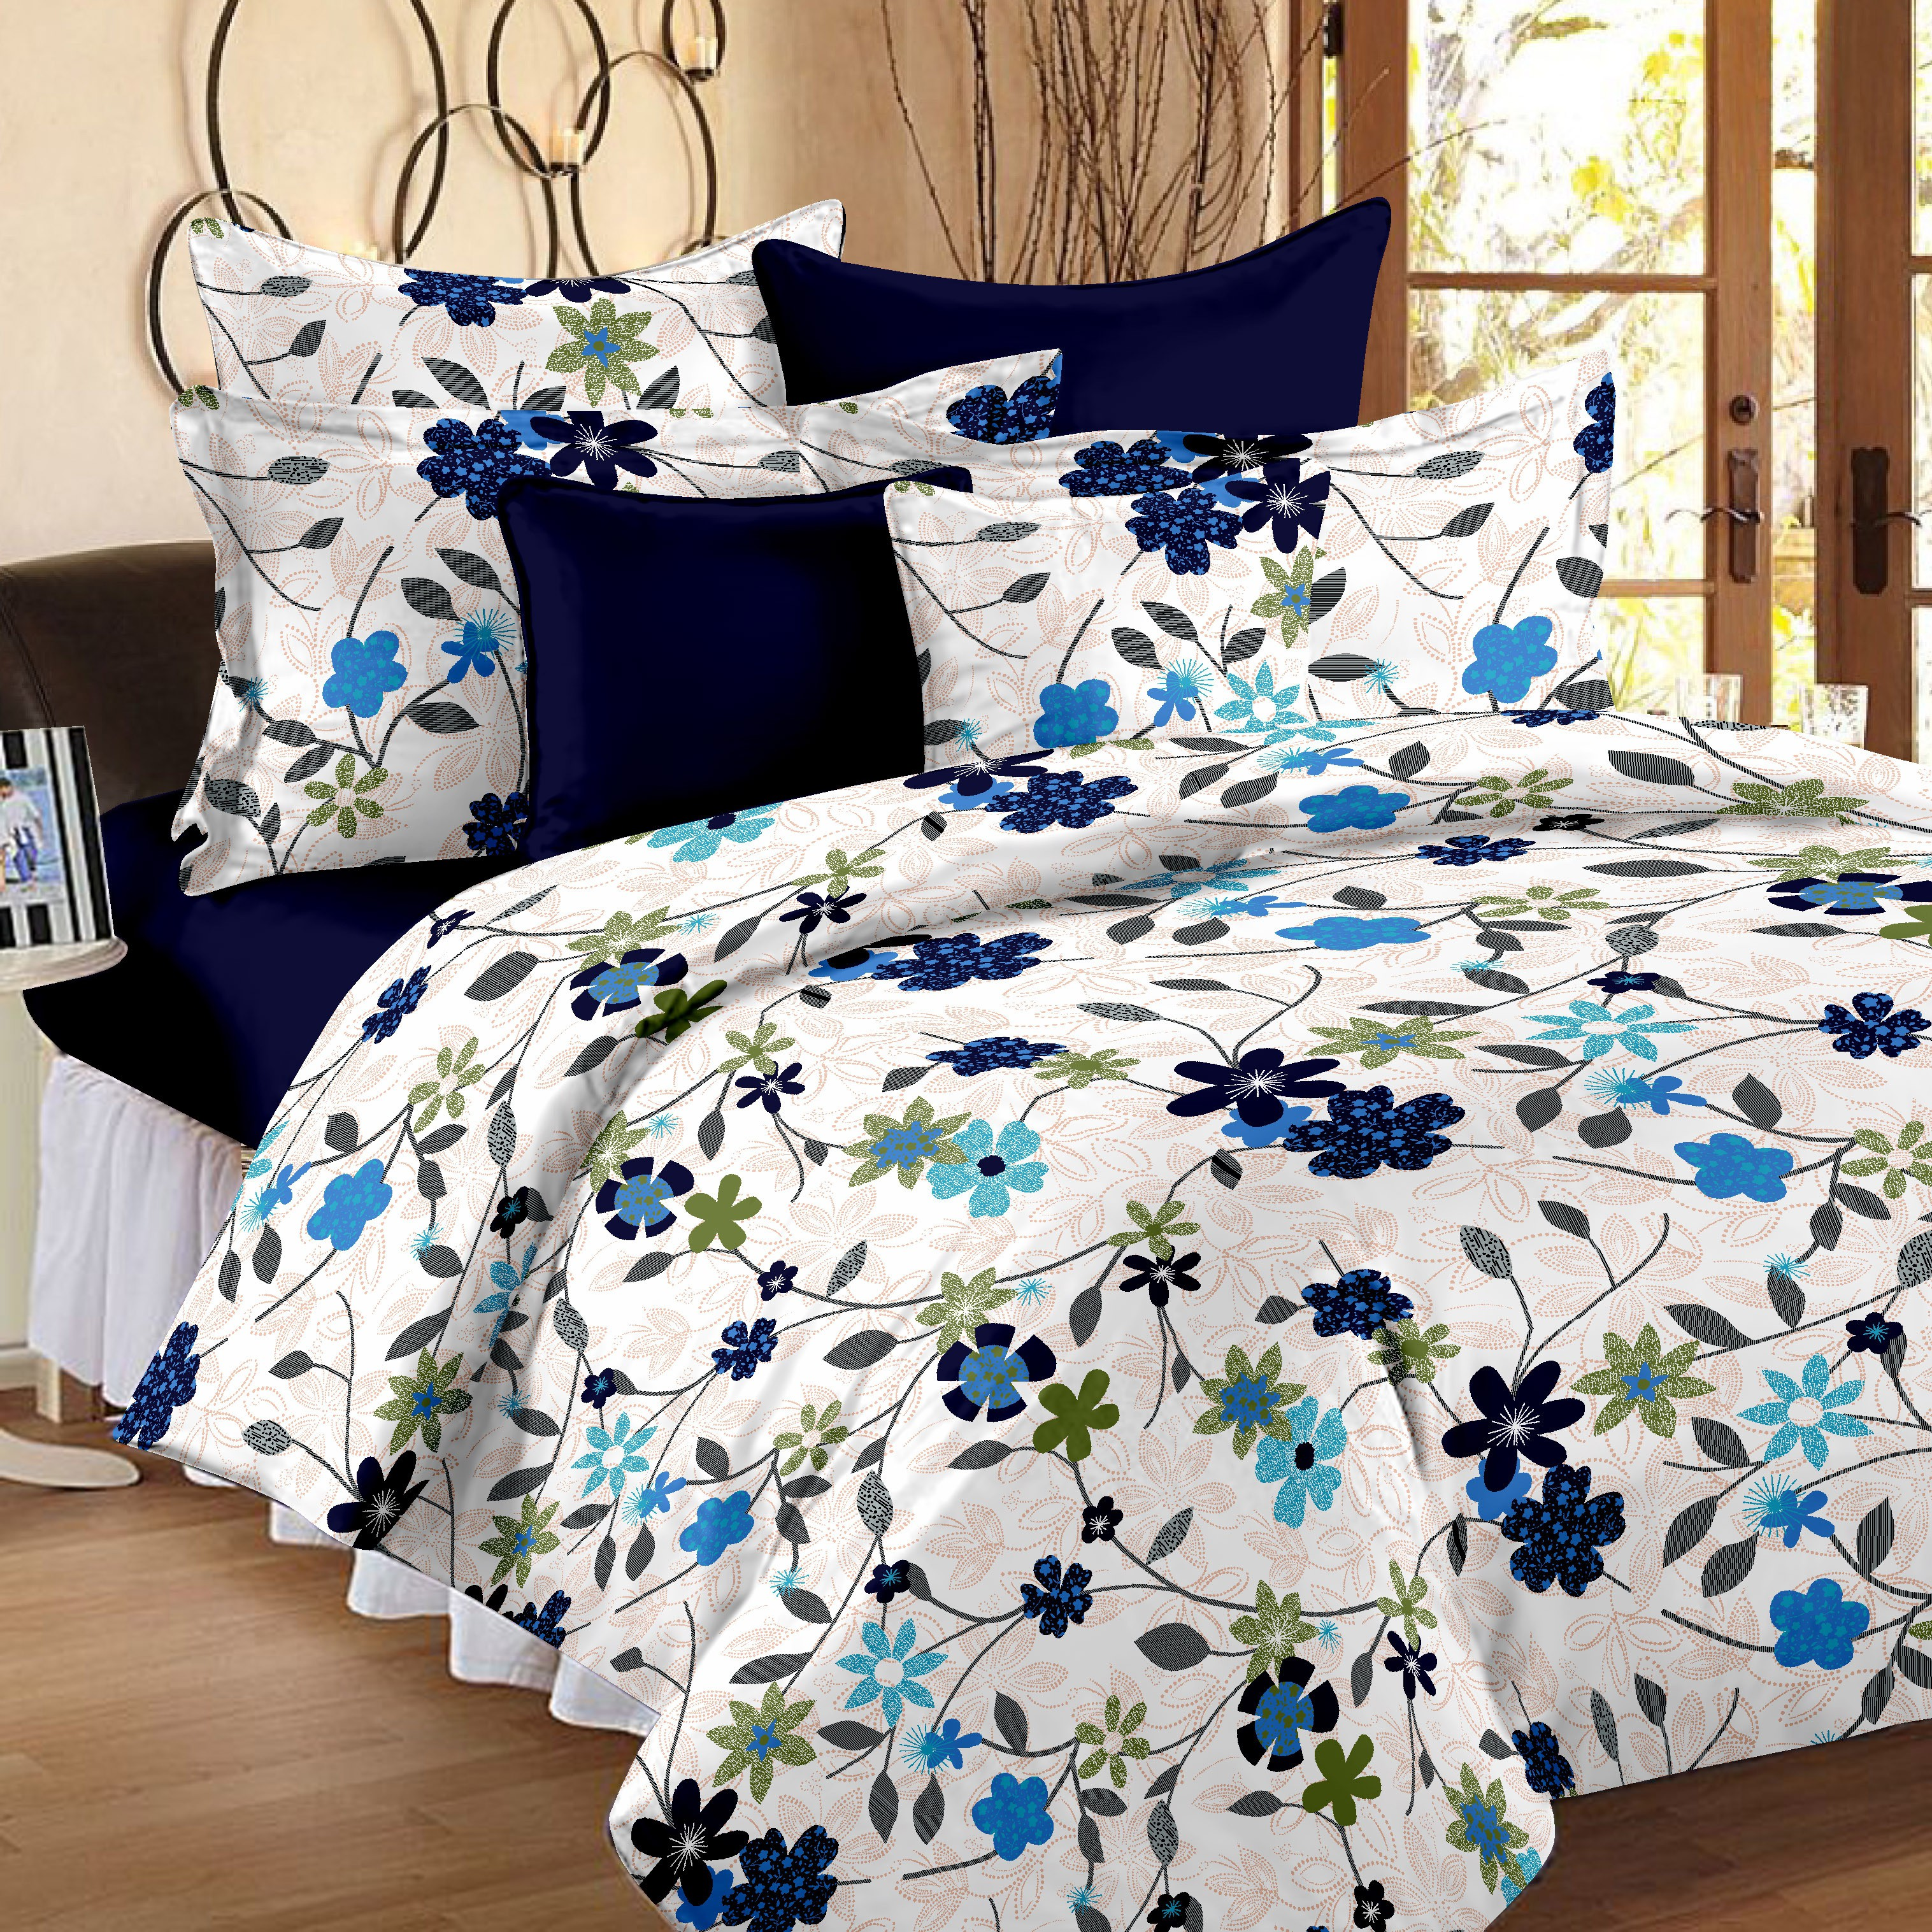 Flipkart - Bedsheets,Curtains & More Under ₹499